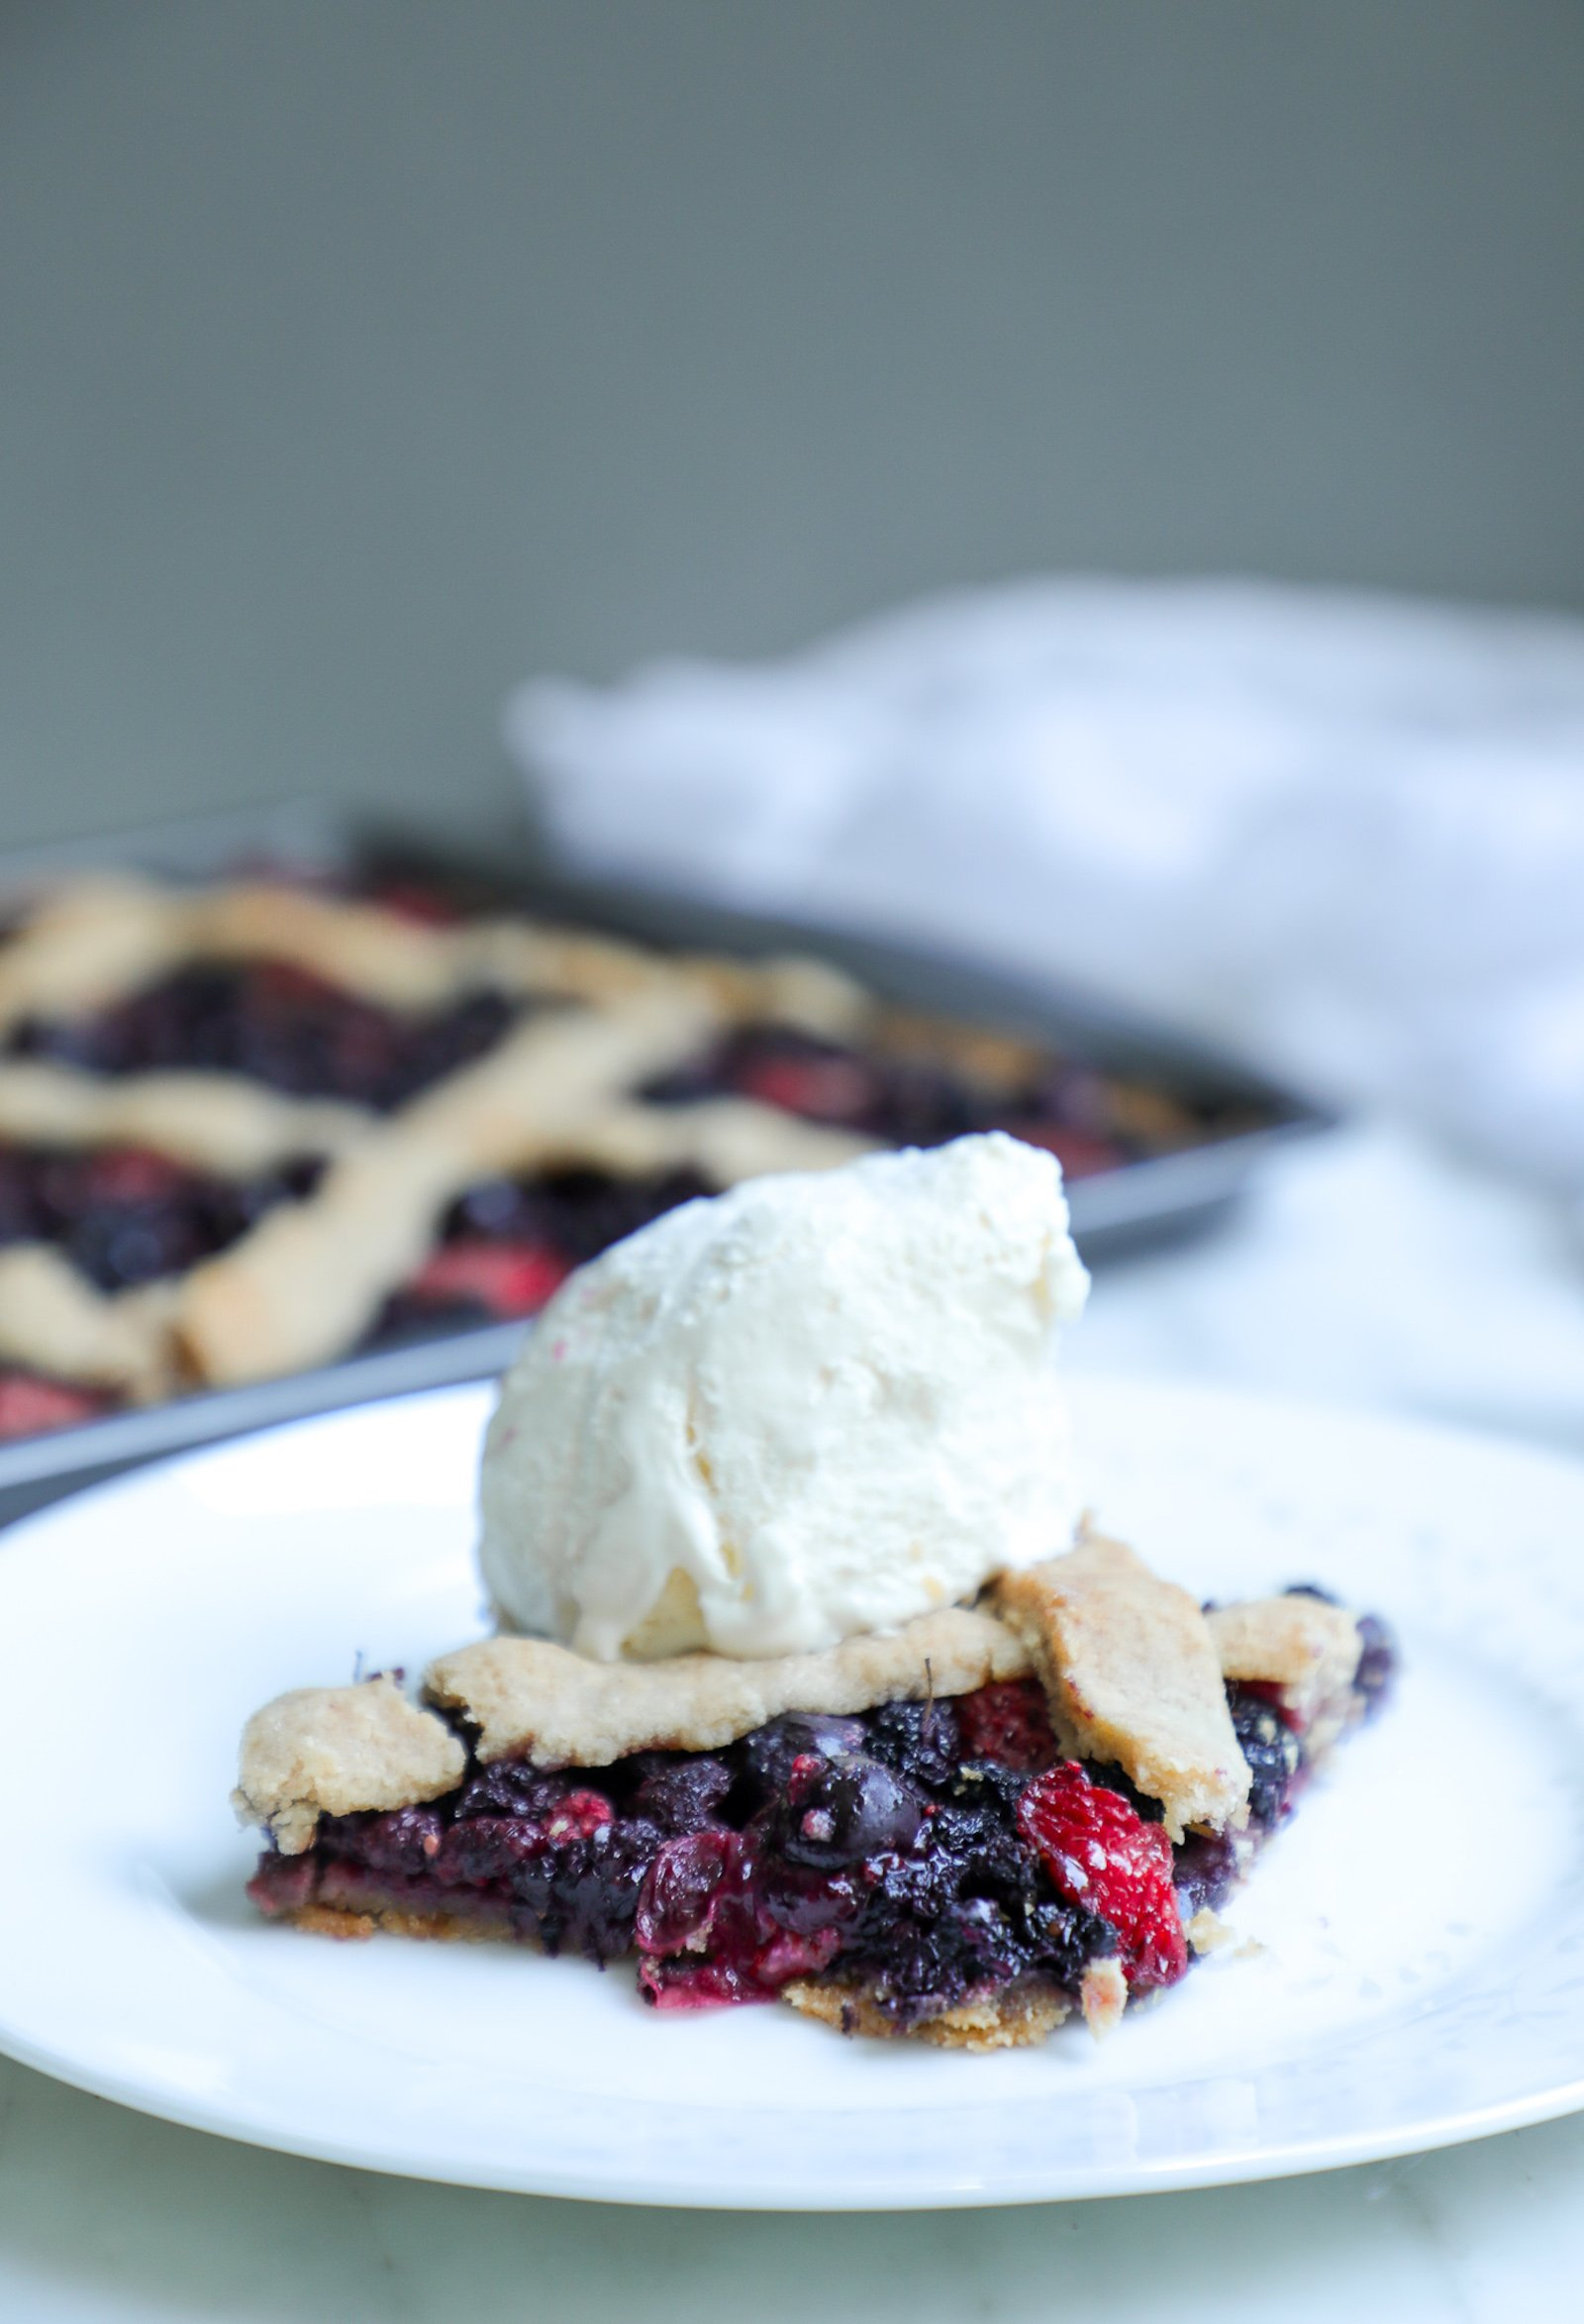 Keto Mixed Berry Slab Pie with low carb vanilla ice cream on top